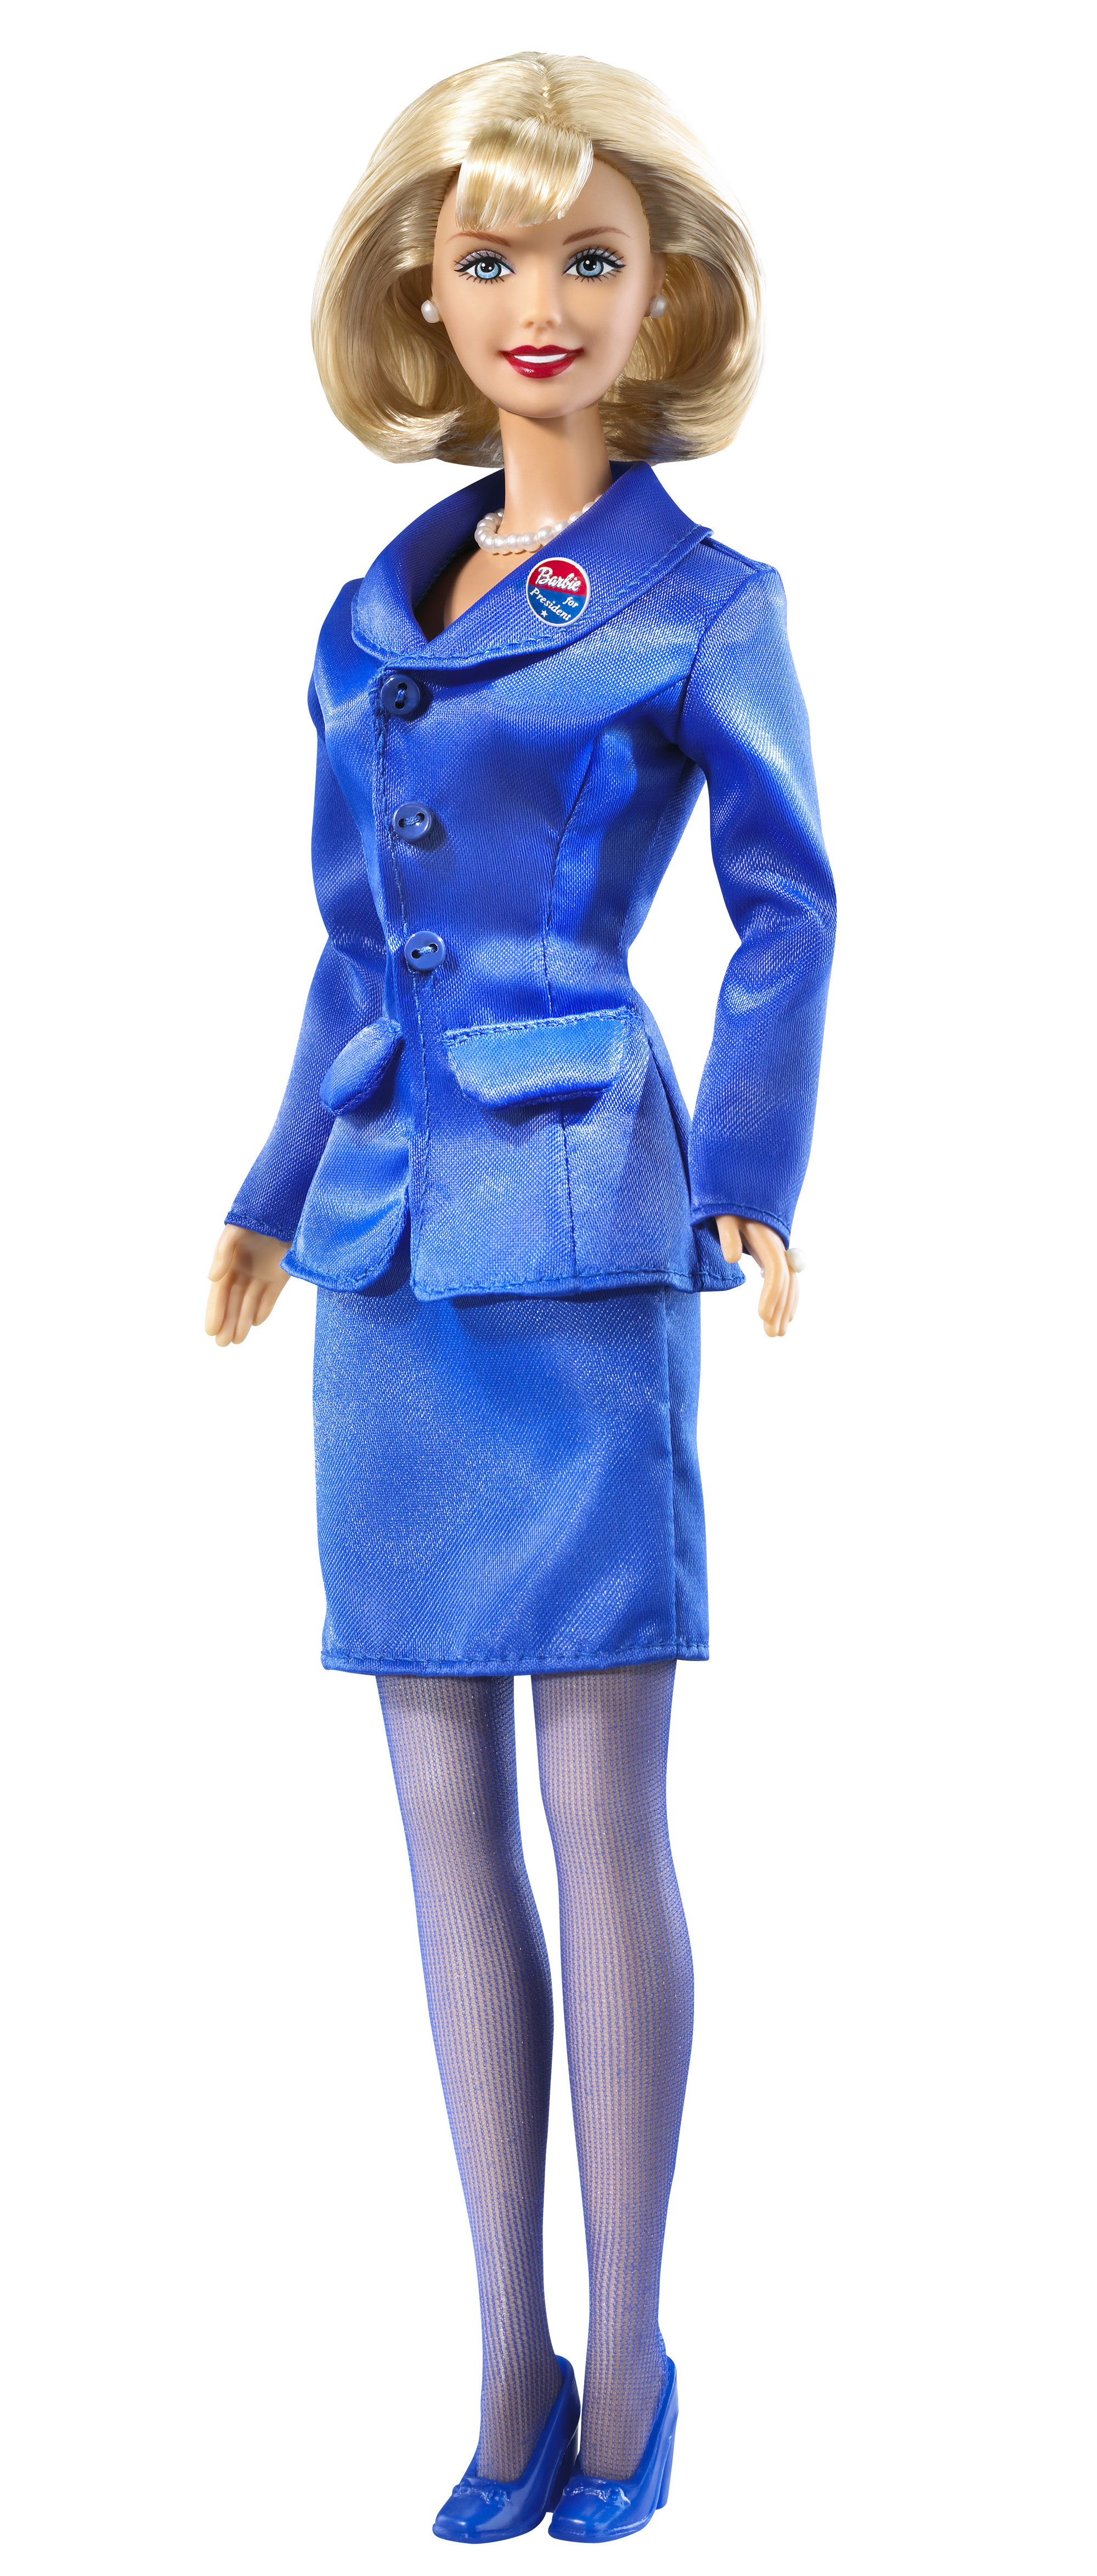 Barbie Candidata Presidencial 2000